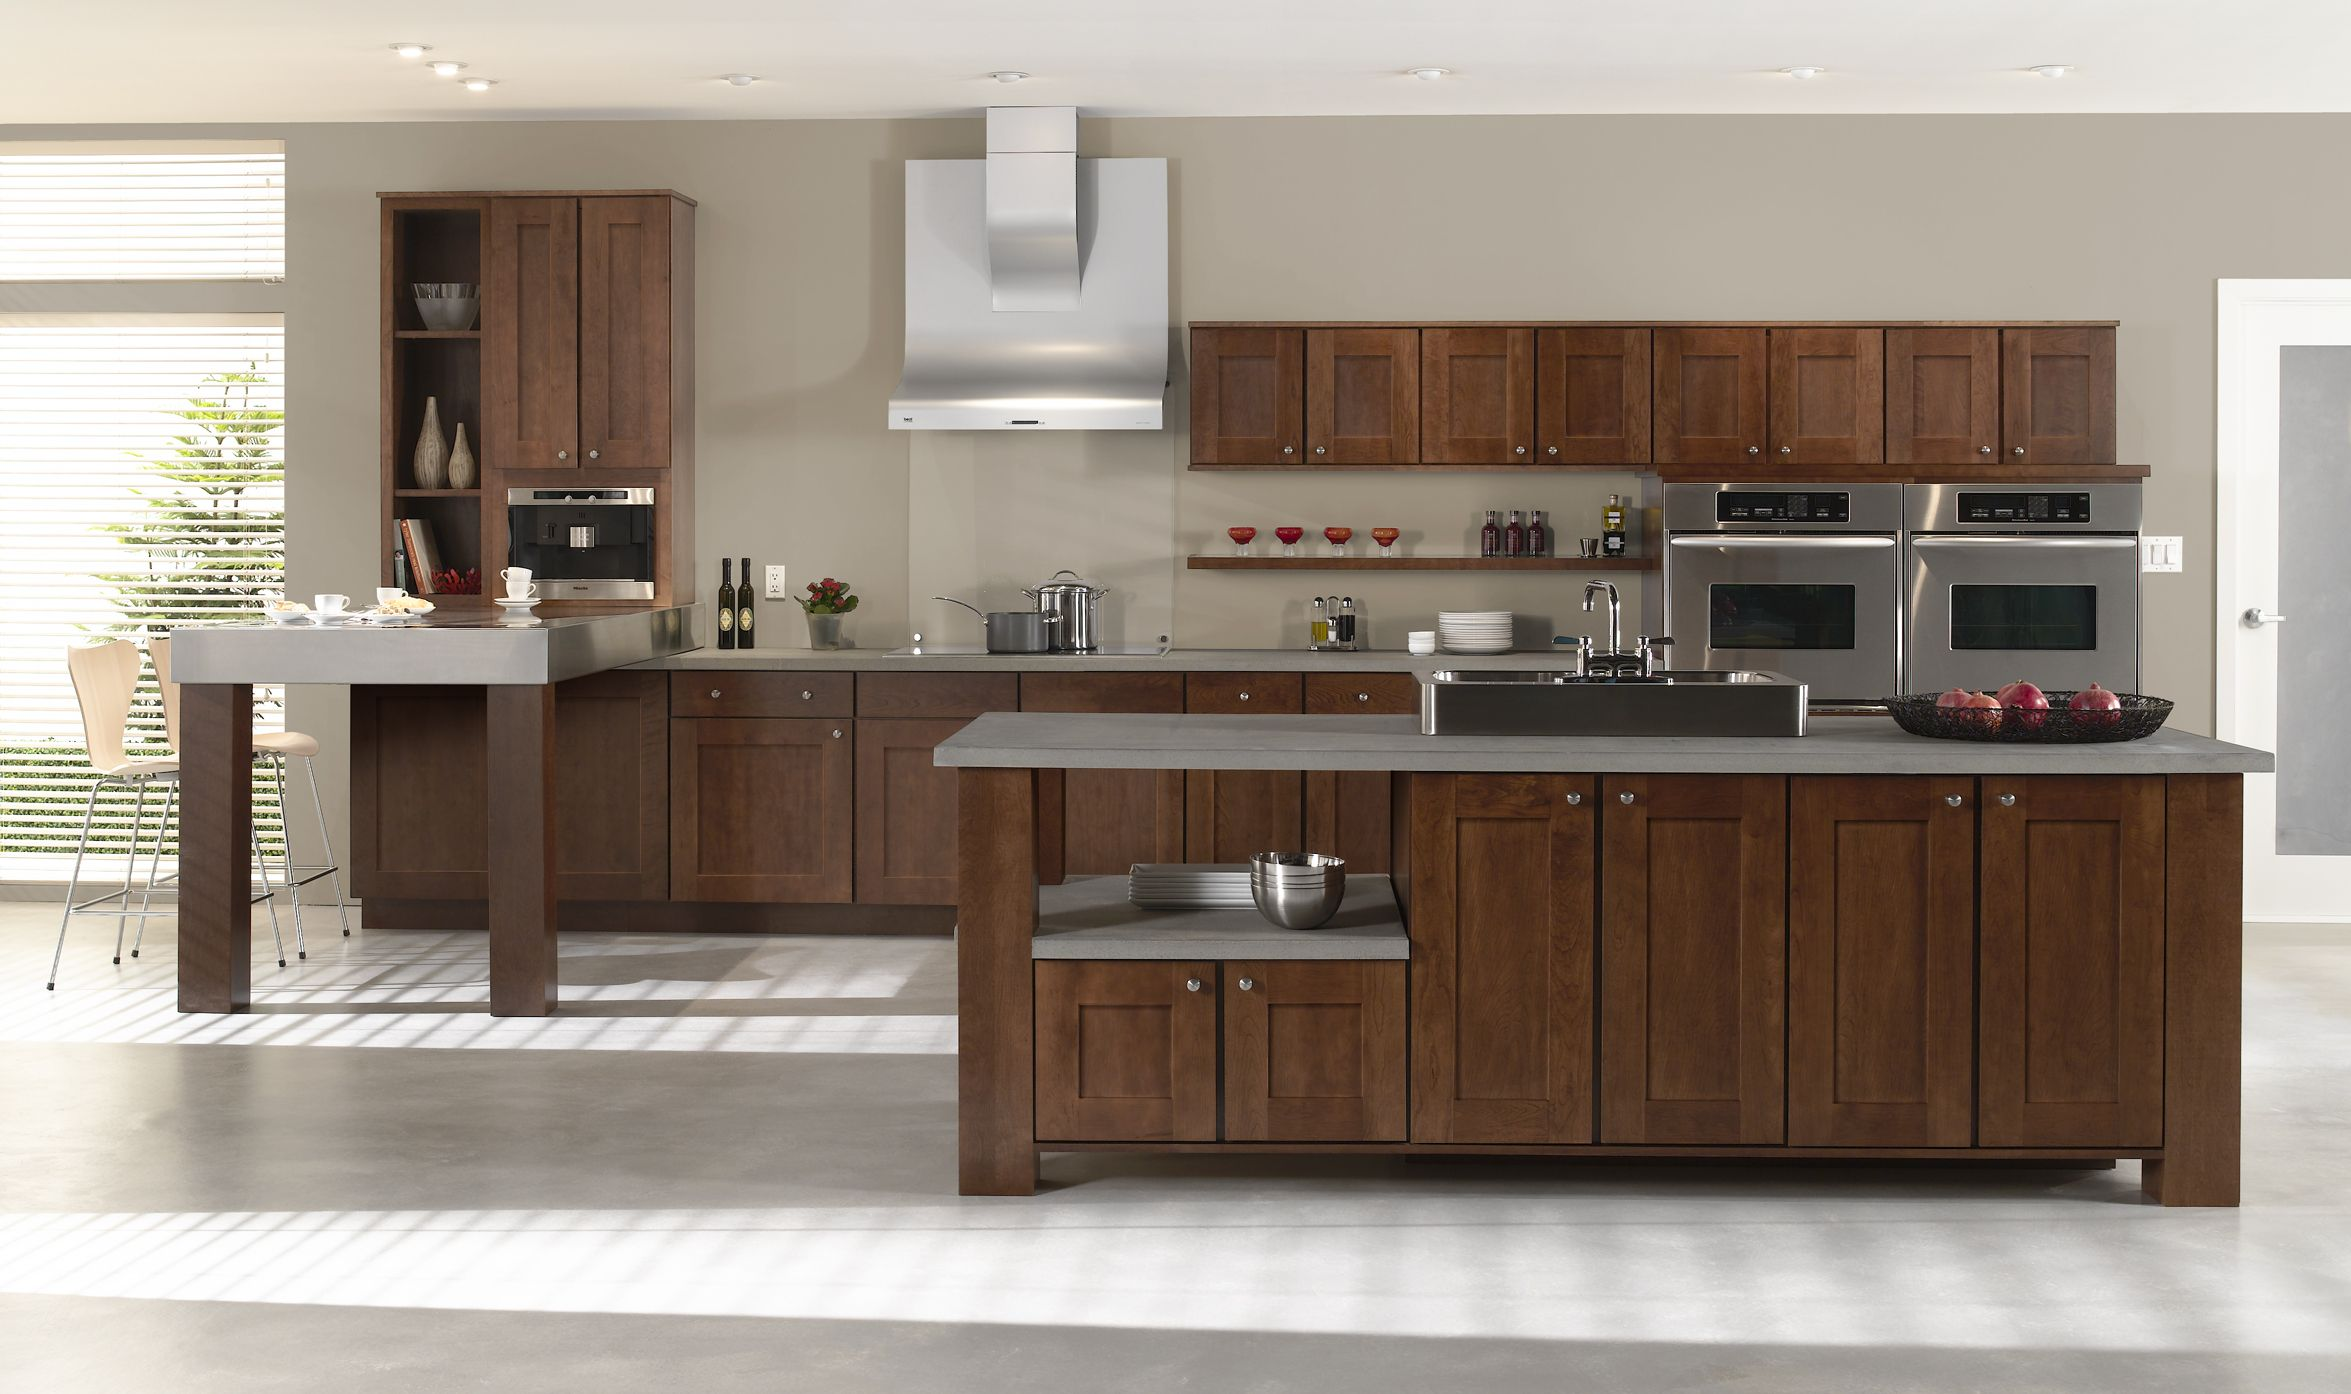 Quality Cabinets For Kitchen Bath With Images Kitchen Furniture Design Kitchen Cupboard Designs Kitchen Projects Design